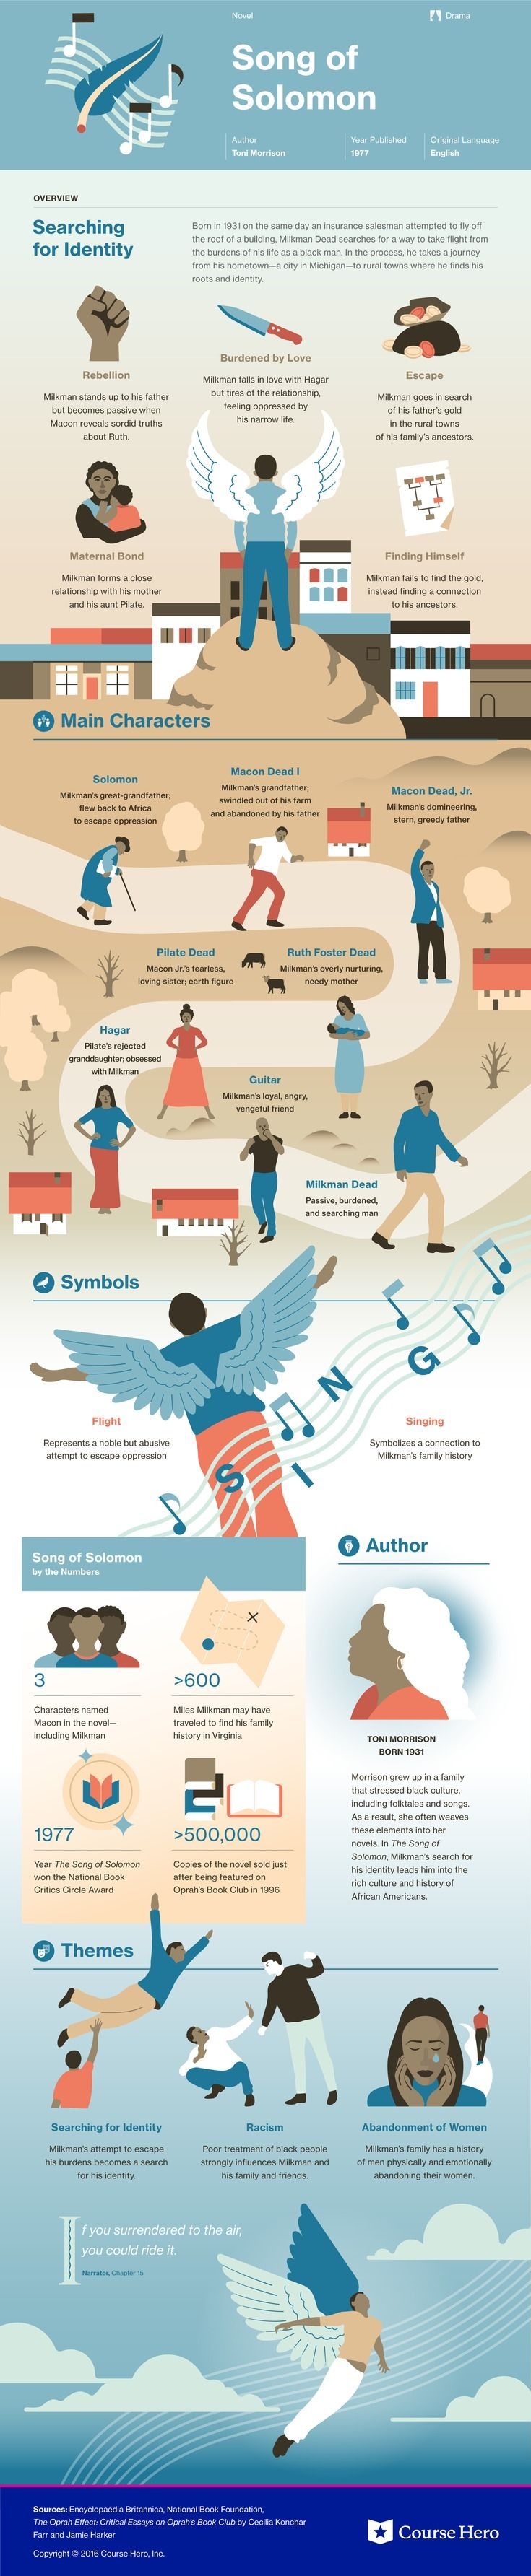 best images about teaching song of solomon song of solomon infographic course hero